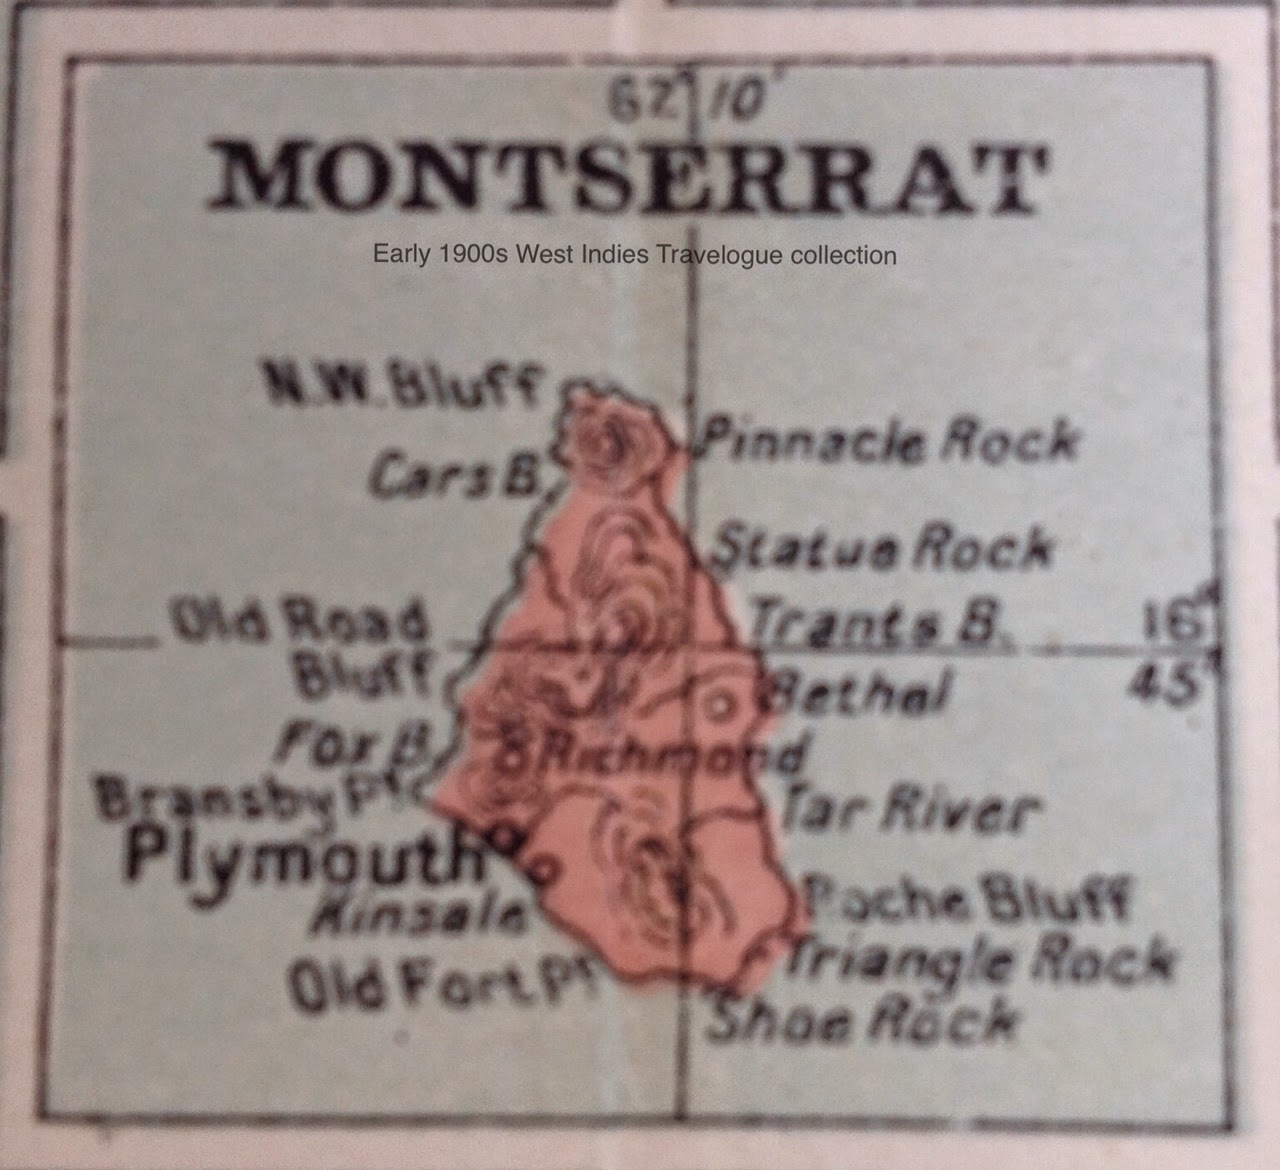 vintage map of montserrat purchased clipped